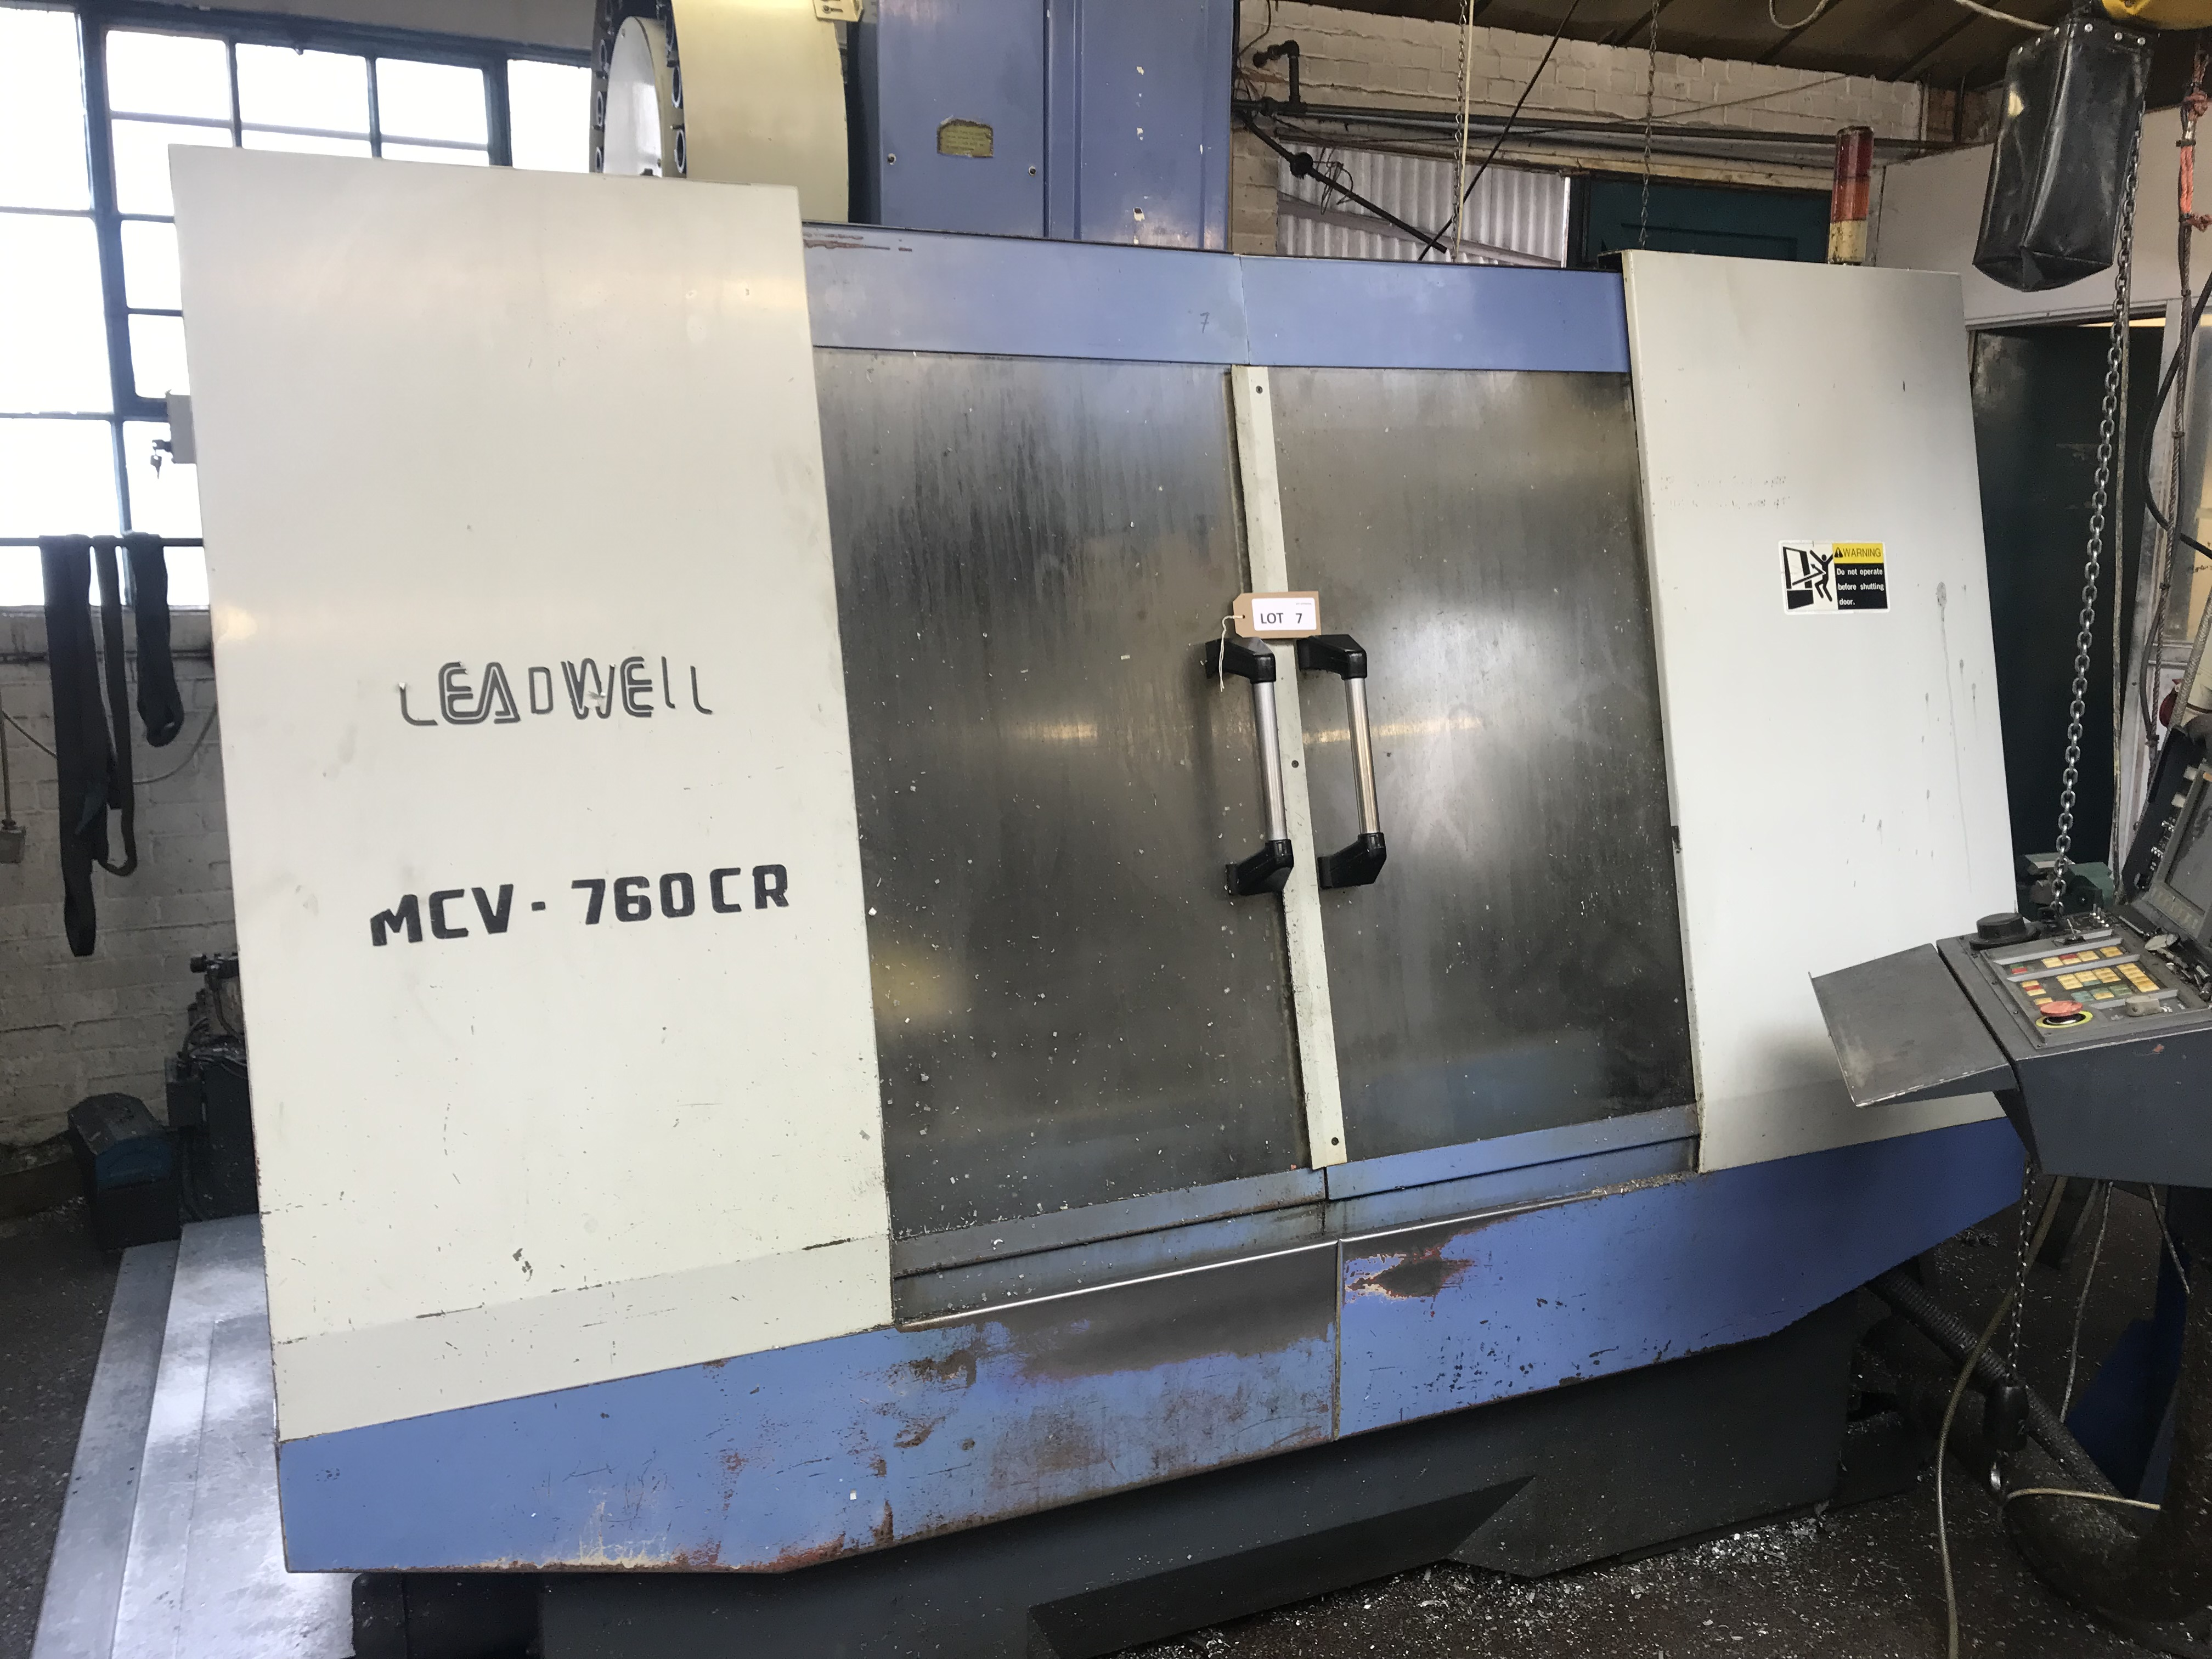 Leadwell MCV-760 vertical machining centre, serial no